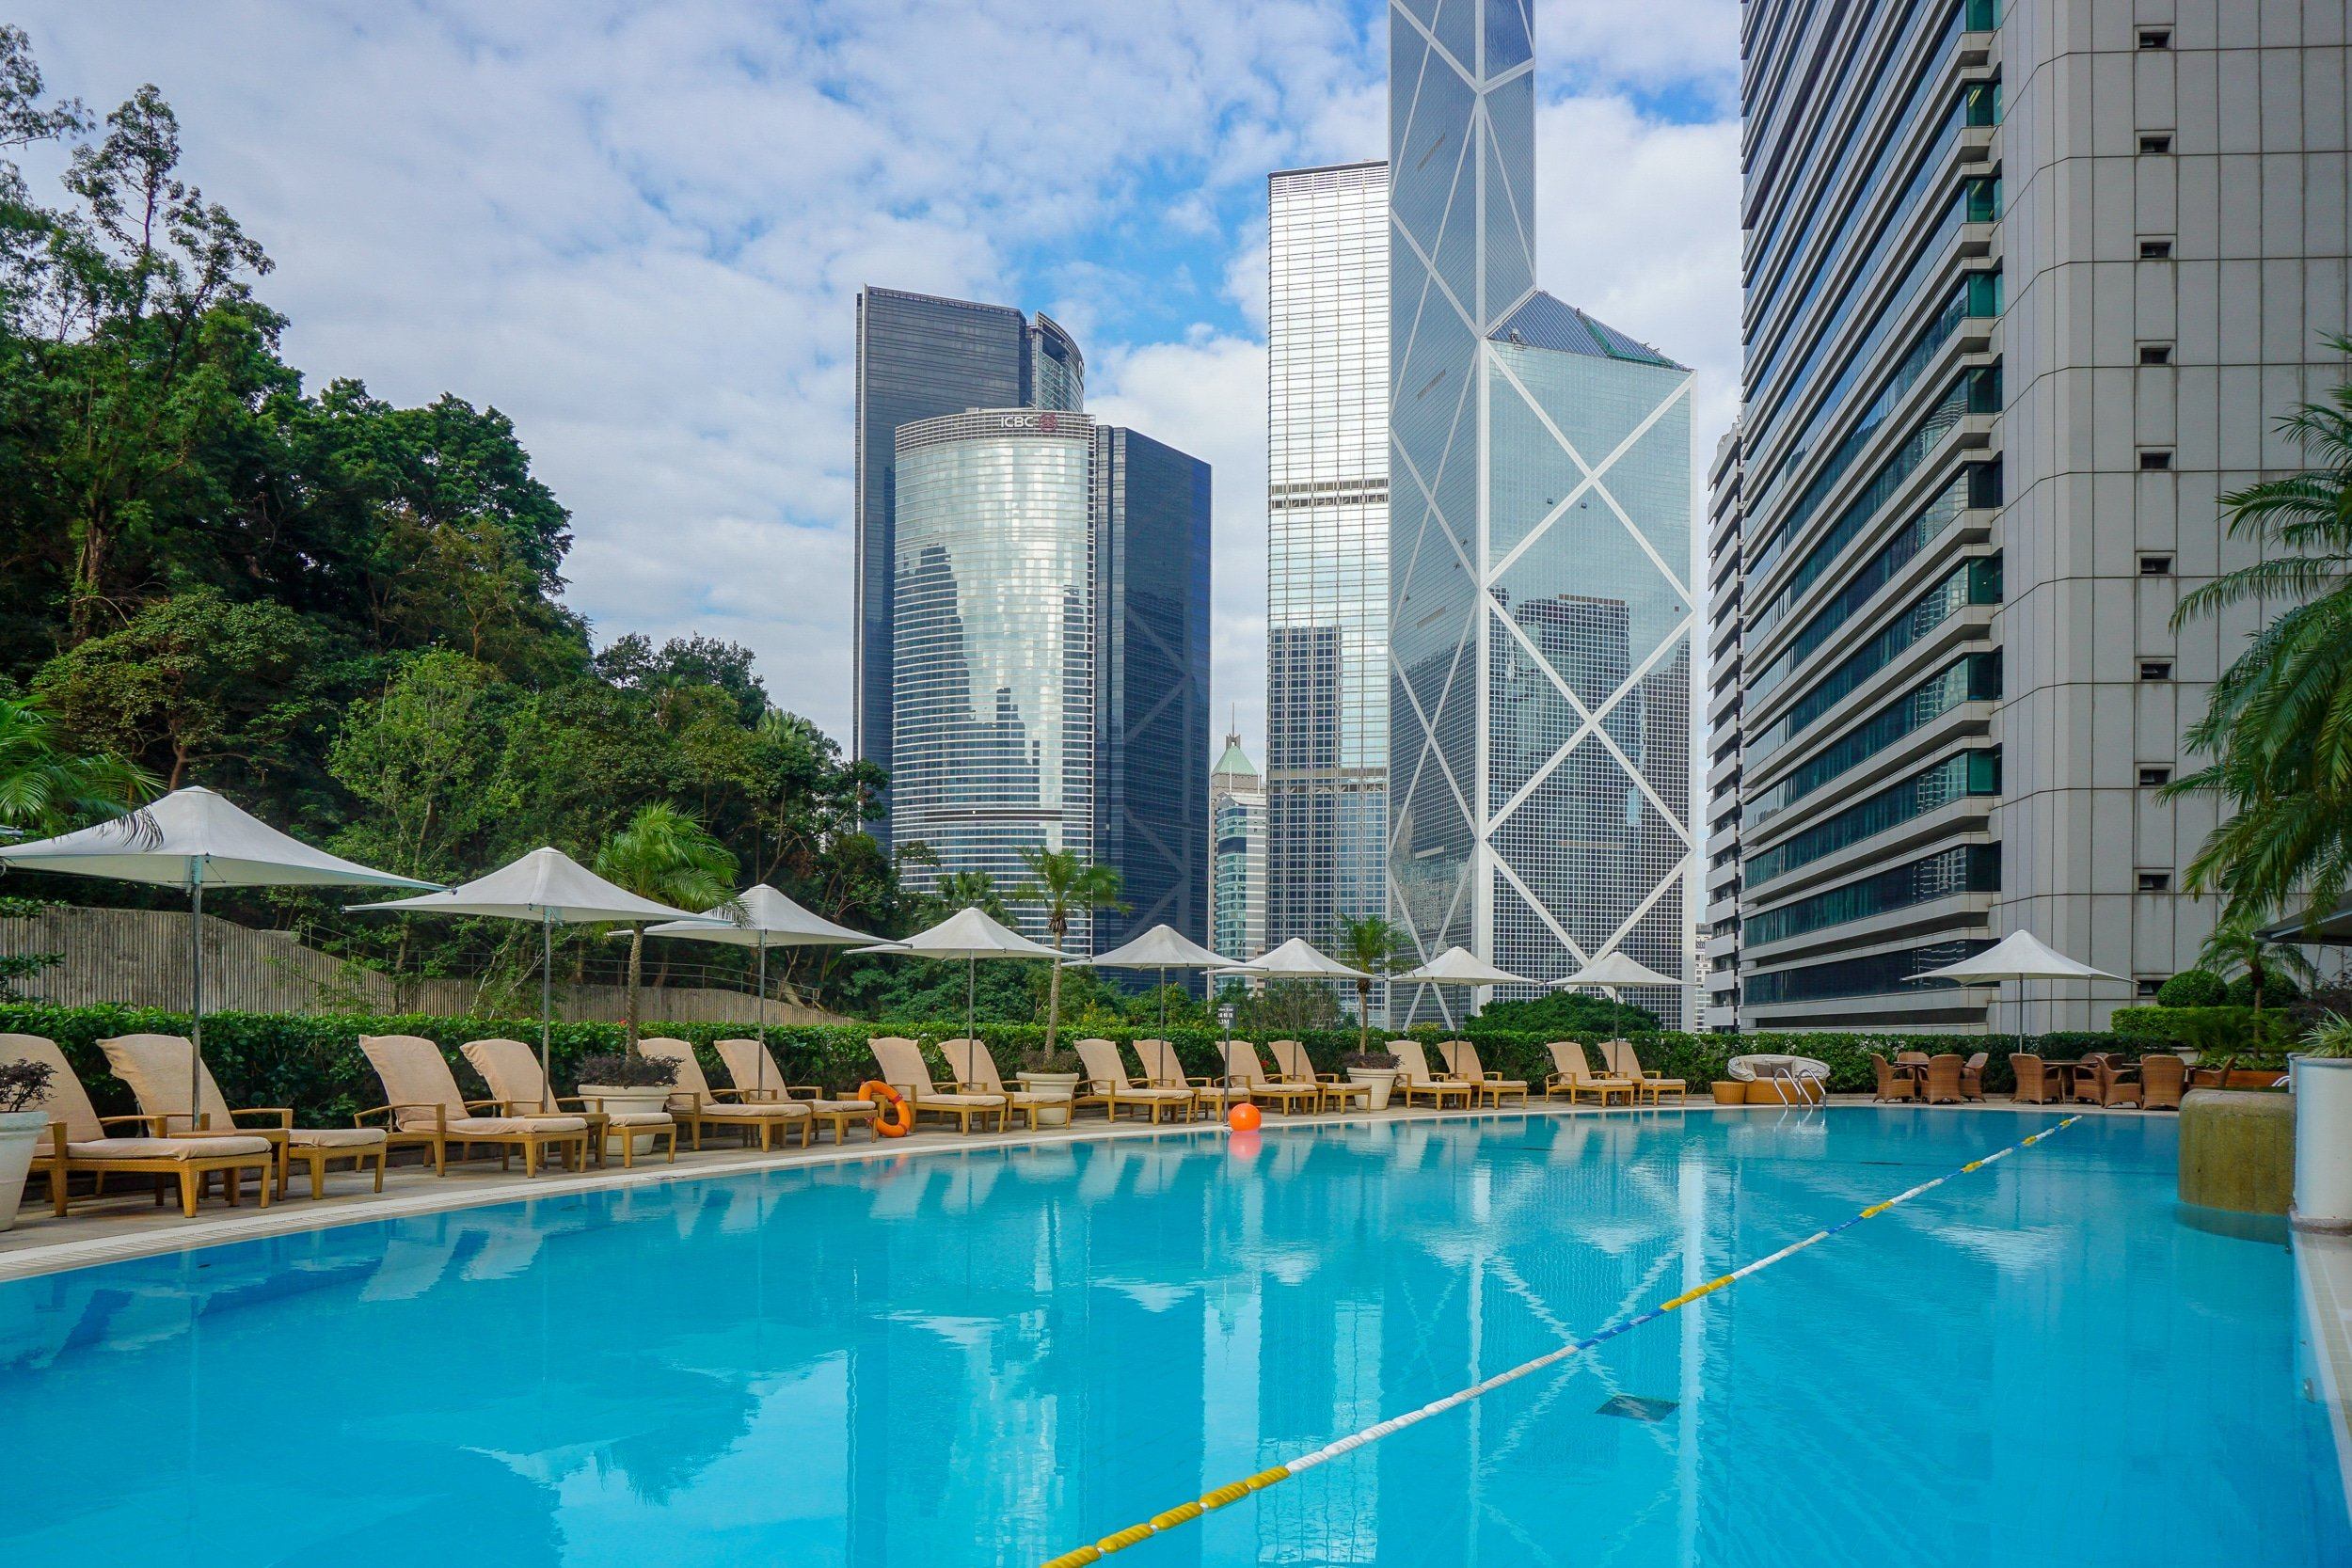 Island Shangri-la Hong Kong heated outdoor pool